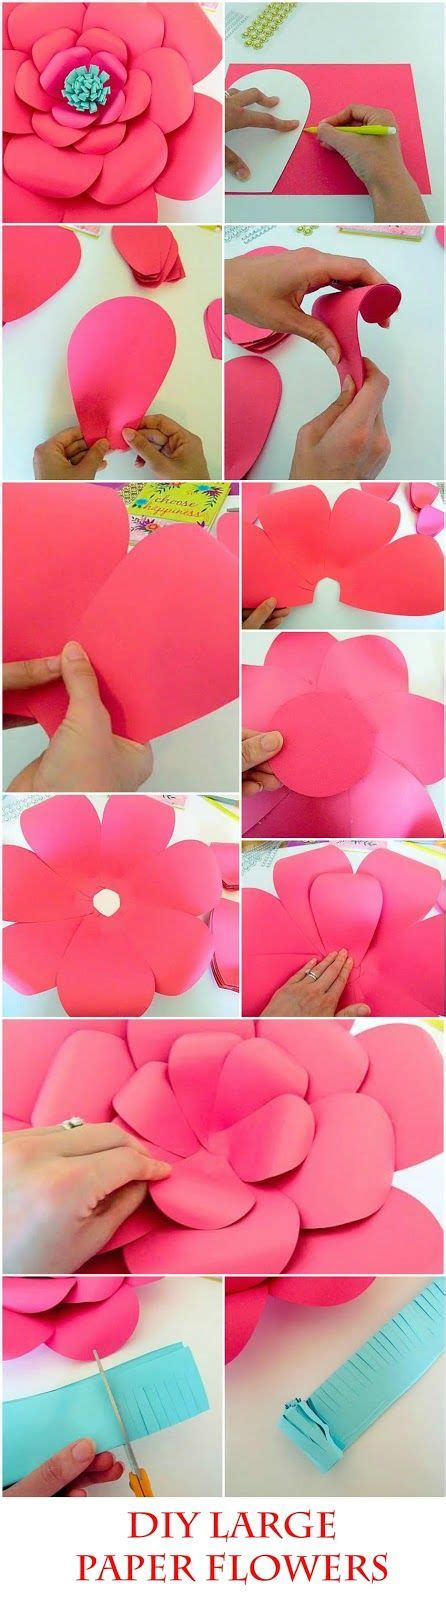 paper flower tutorial pinterest diy giant paper flowers easy backdrop flower tutorial